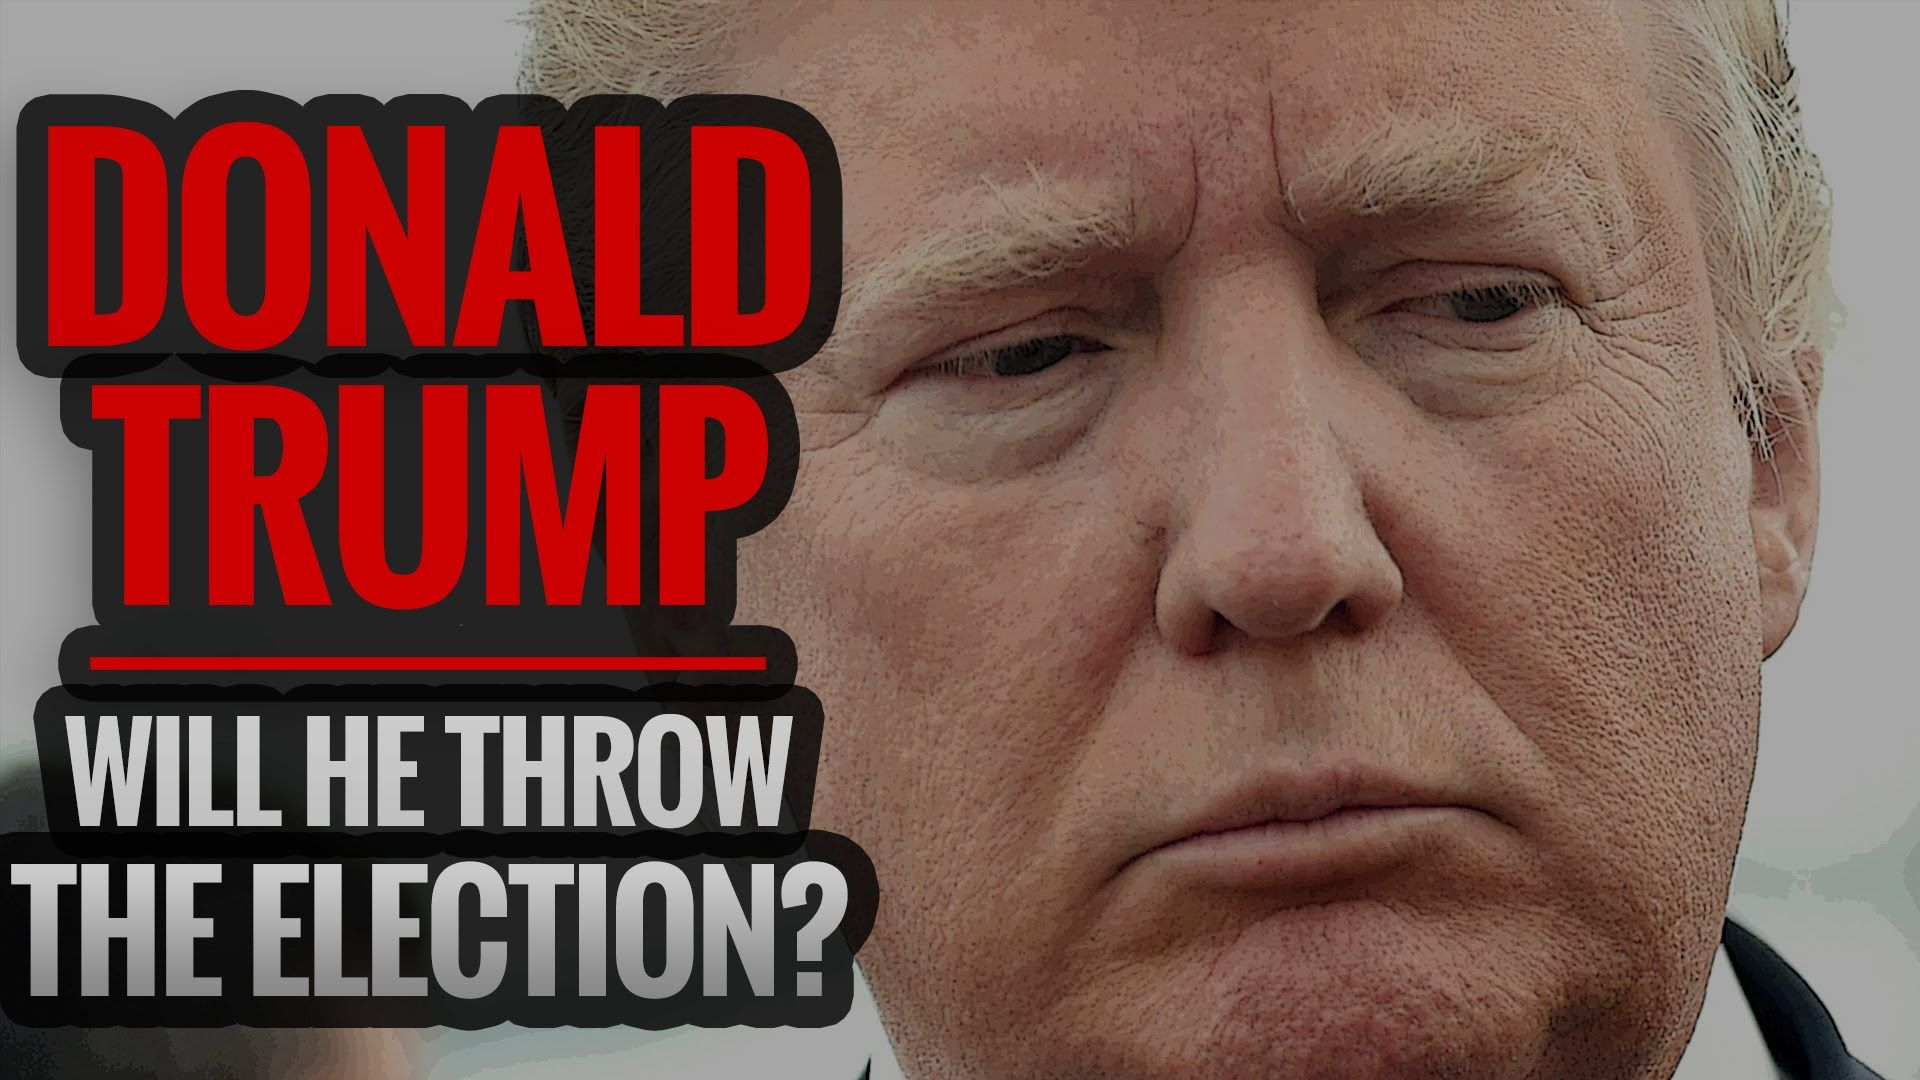 DONALD TRUMP: Will He Throw the Election?